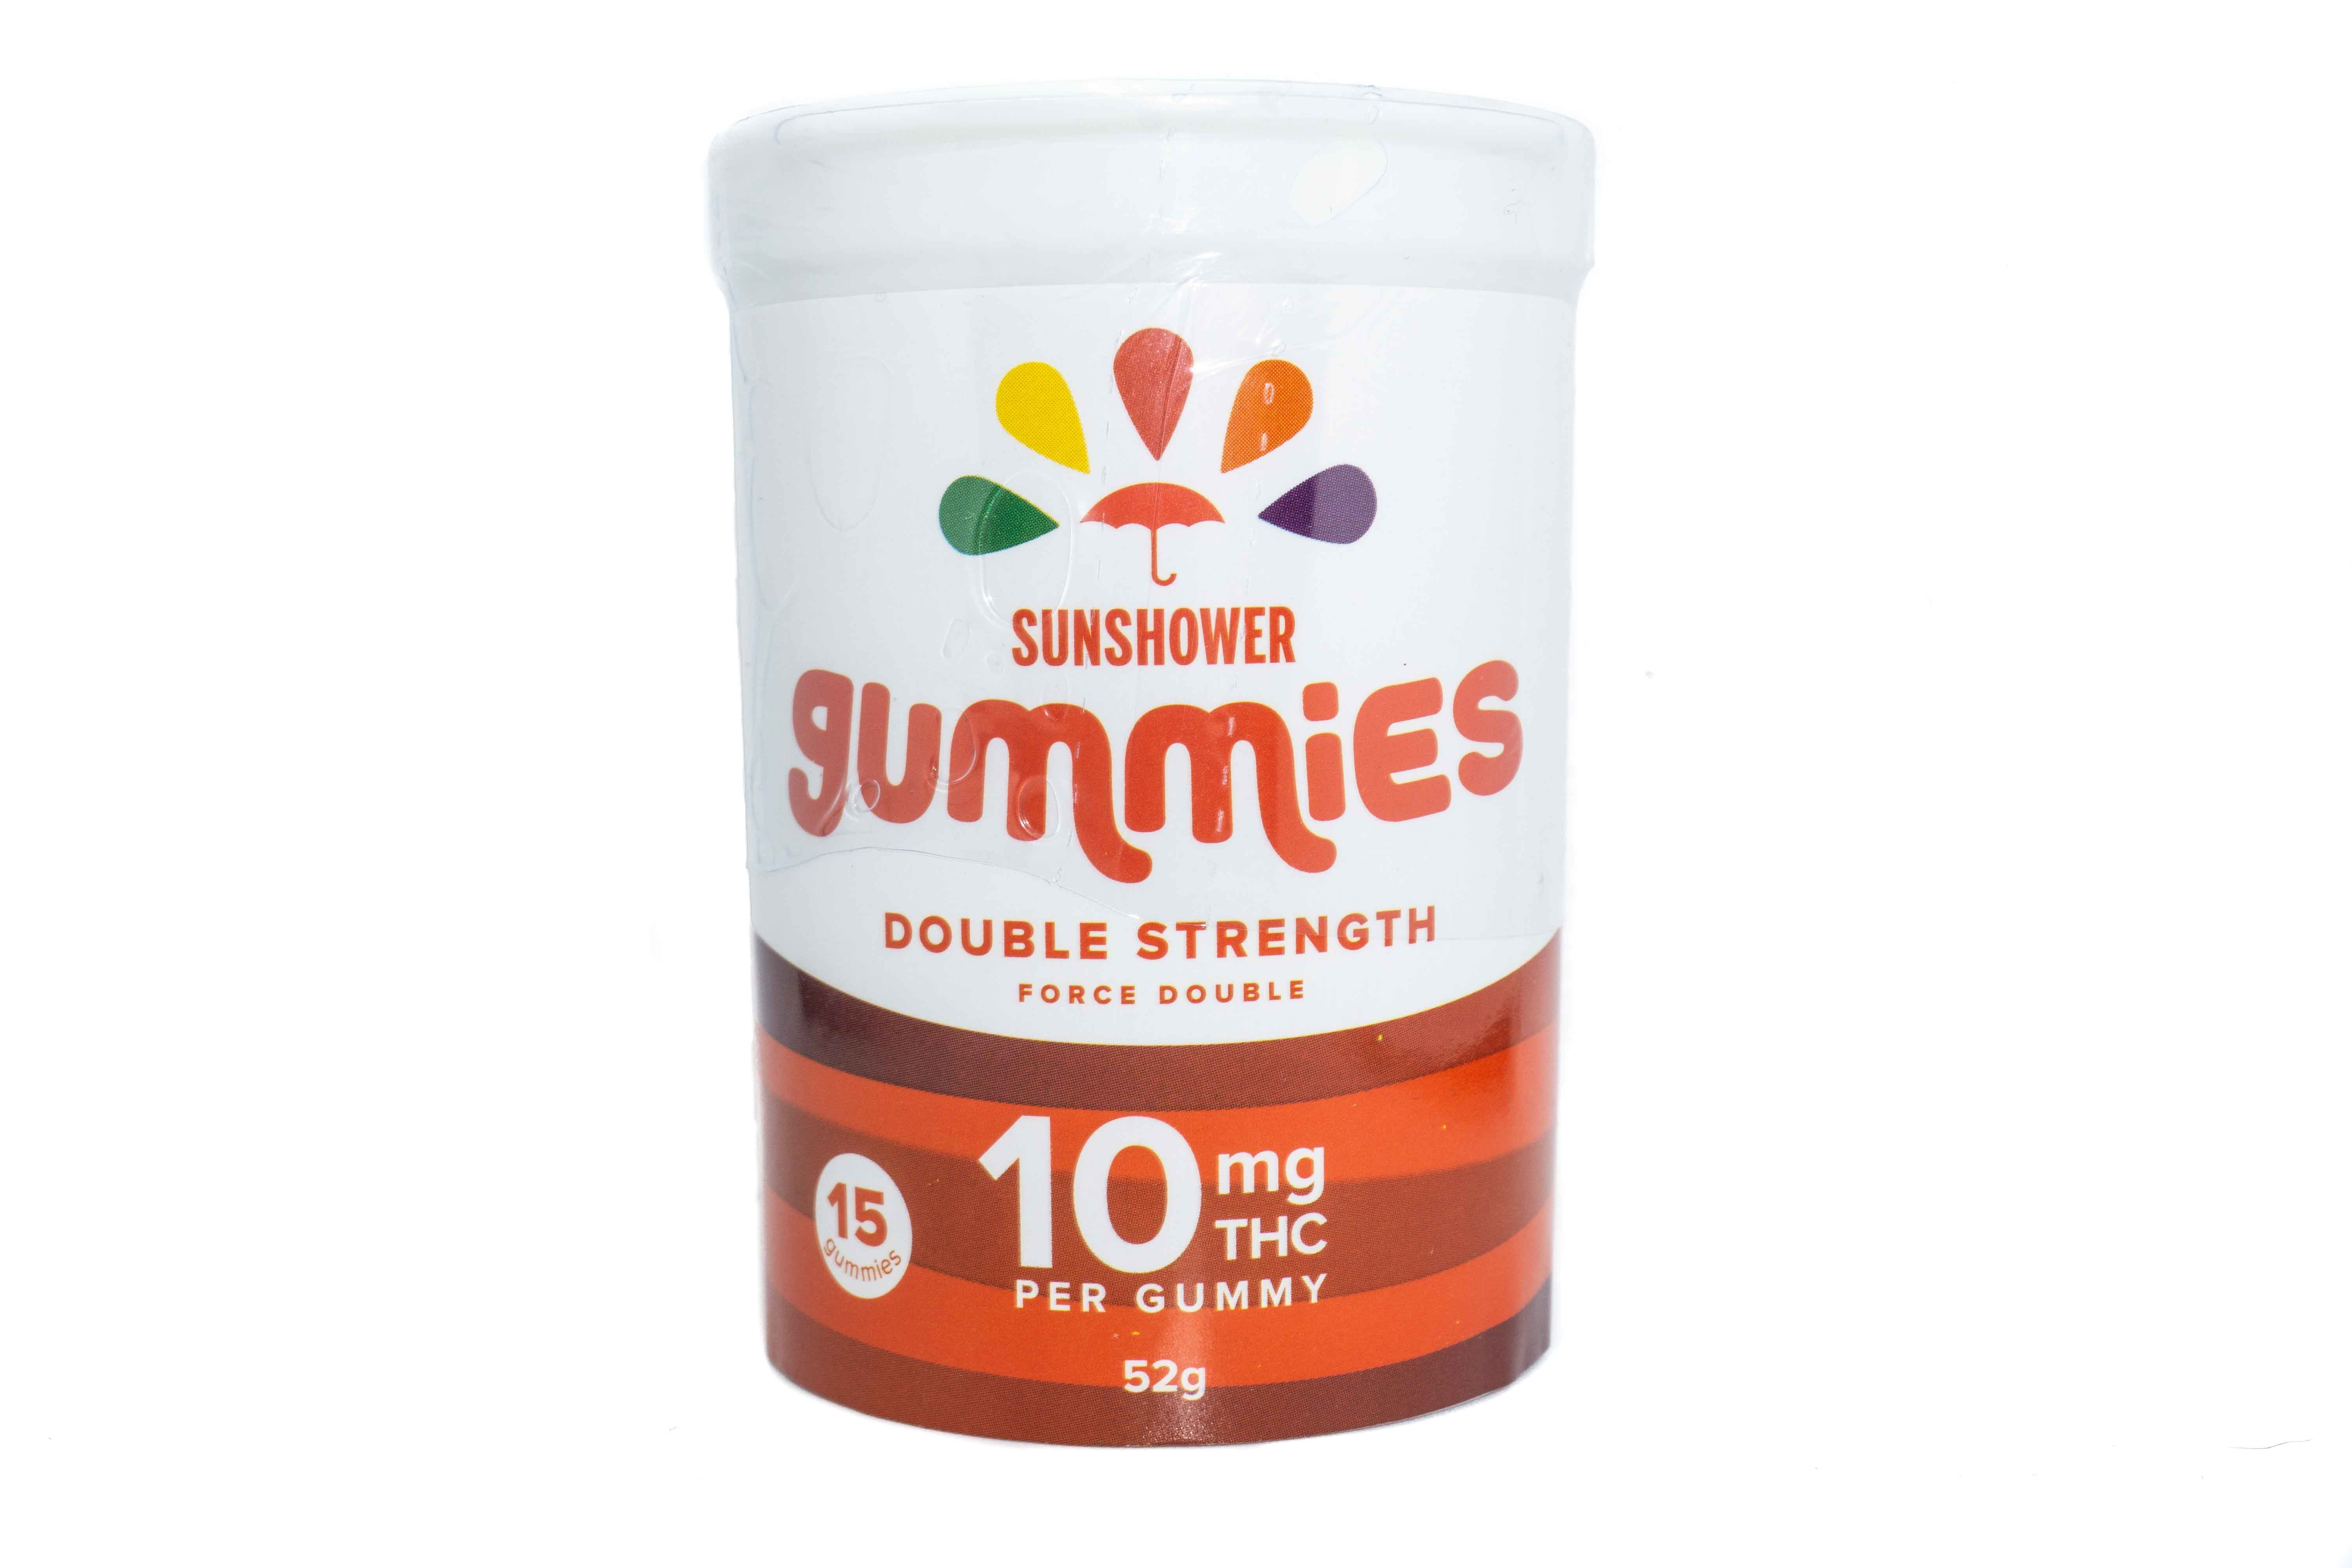 Double Strength Sunshower Gummies by Baked Edibles (150mg) 01226